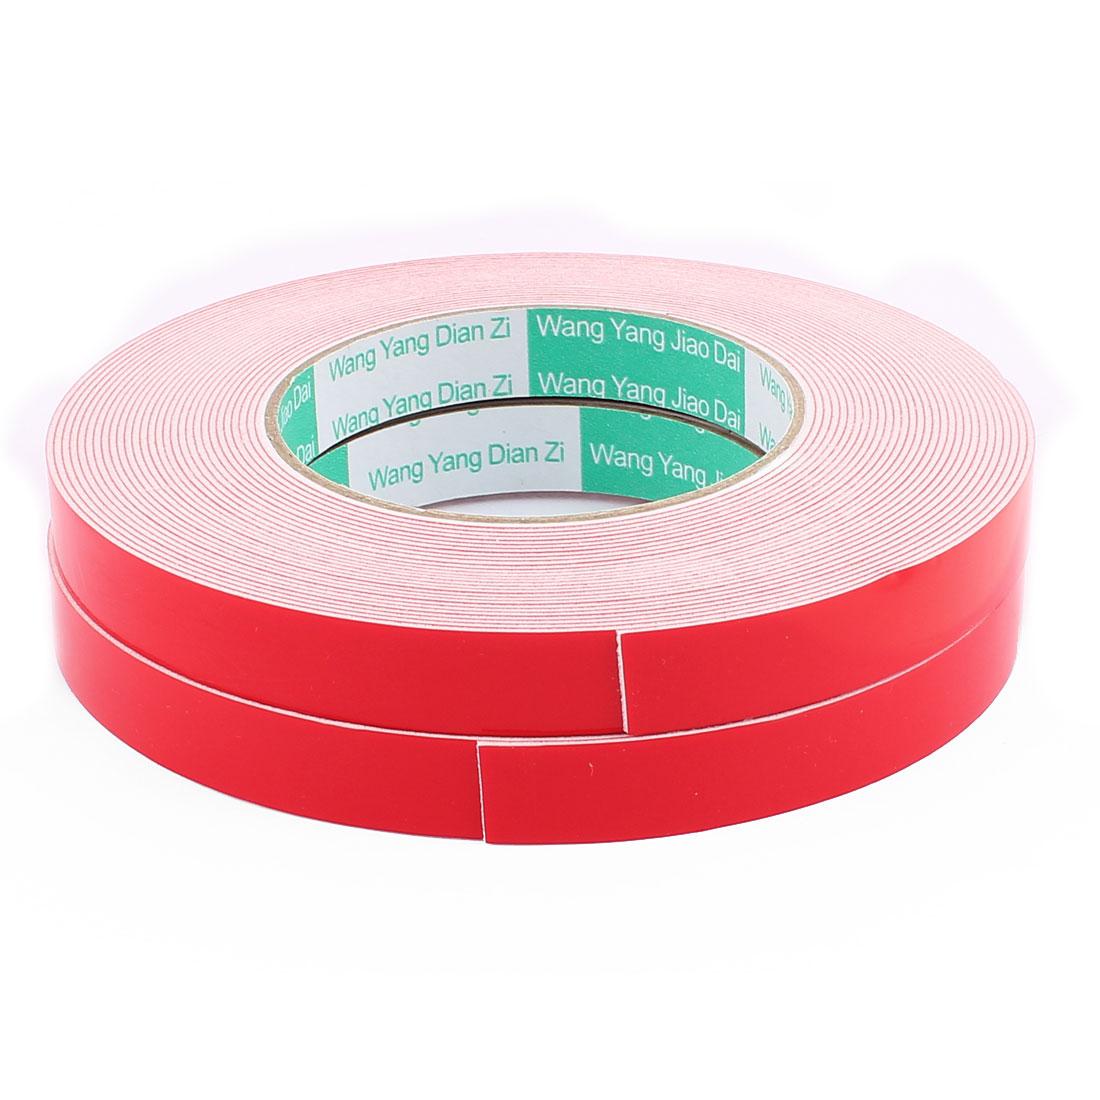 2PCS 15MM Width 10M Long 1MM Thick White Dual Sided Waterproof Sponge Tape for Car